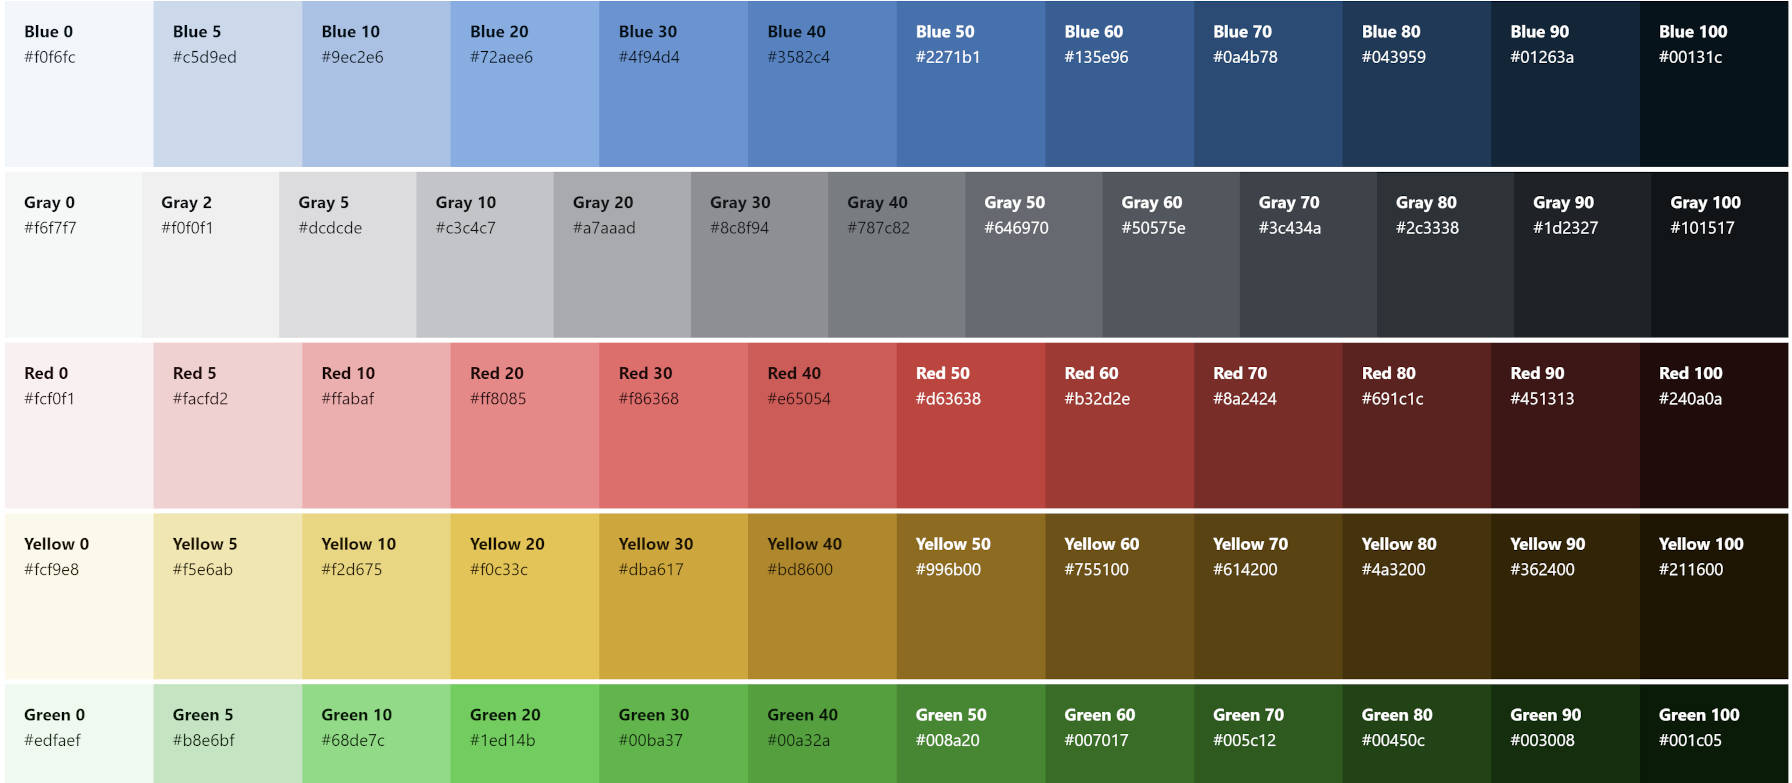 Color palette of blues, grays, reds, yellows, and greens from the WordPress admin color scheme.